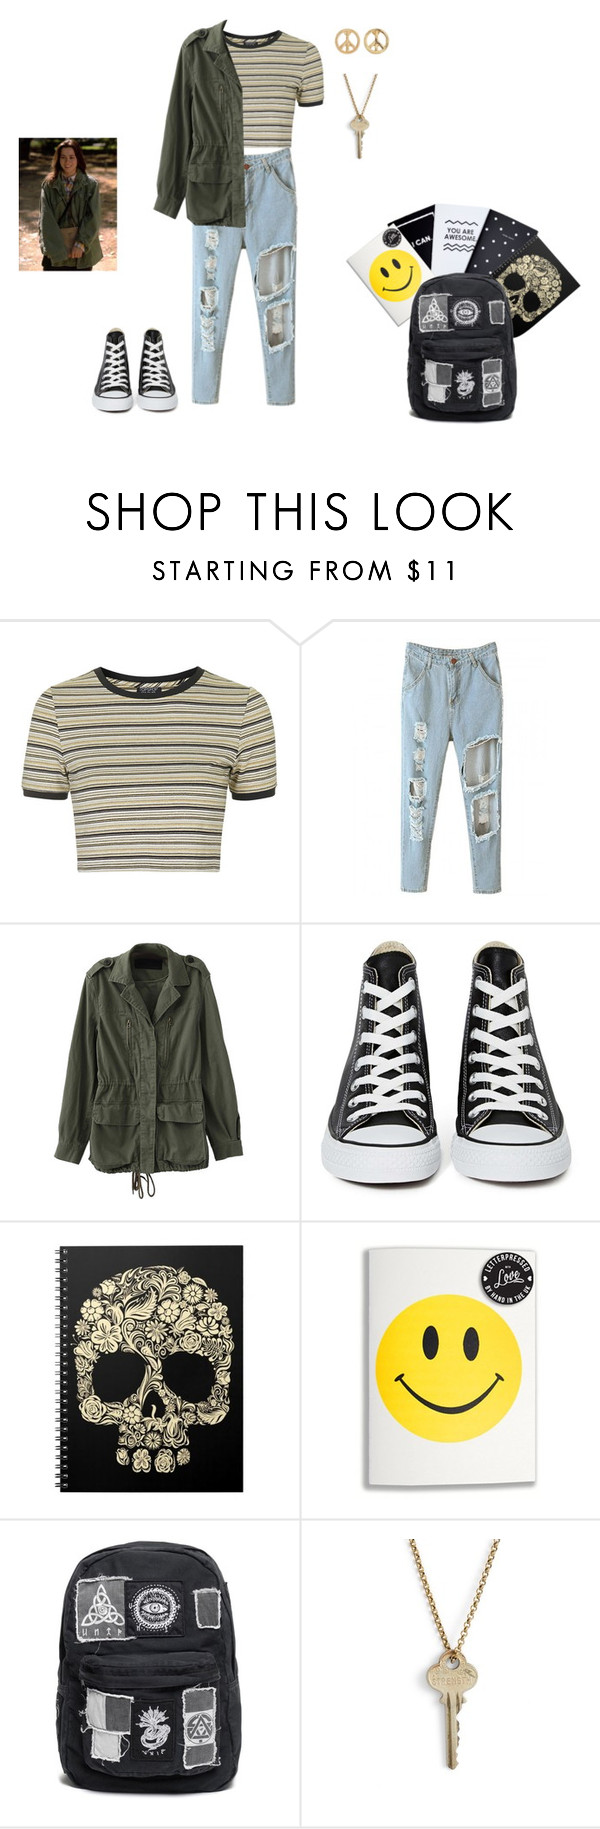 """""""Back to school outfit based on Lindsay Weir-Freaks and Geeks"""" by msgeeky ❤ liked on Polyvore featuring Topshop, Converse, The Giving Keys and Mudd"""